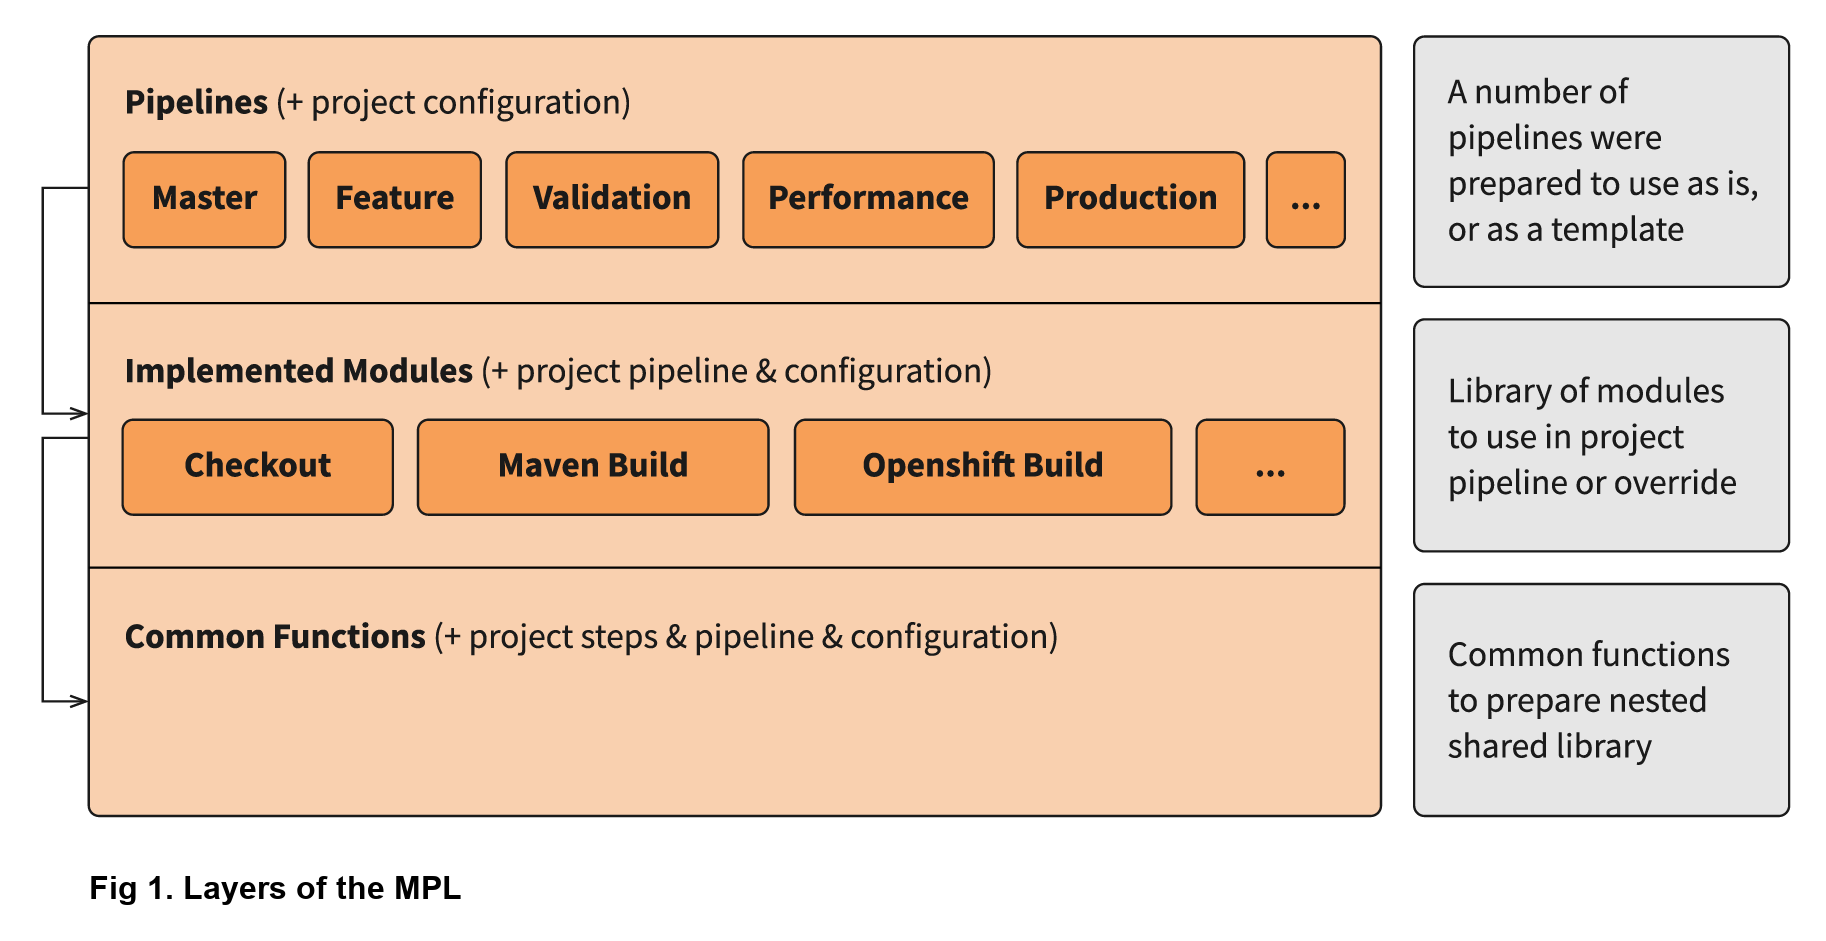 Developing a modular pipeline library to improve DevOps collaboration